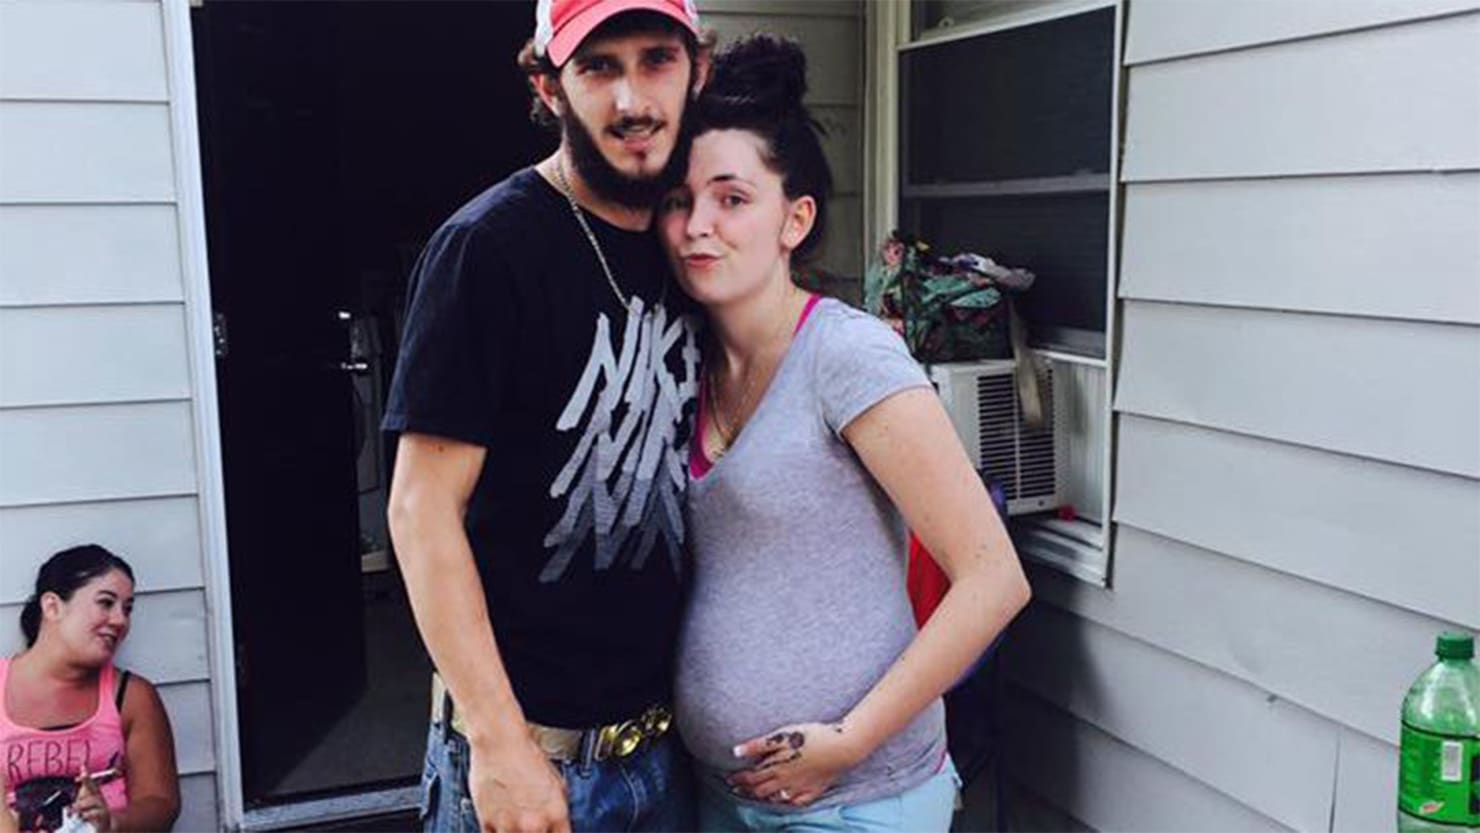 Woman Who Faked Pregnancy At Gender Reveal Shooting